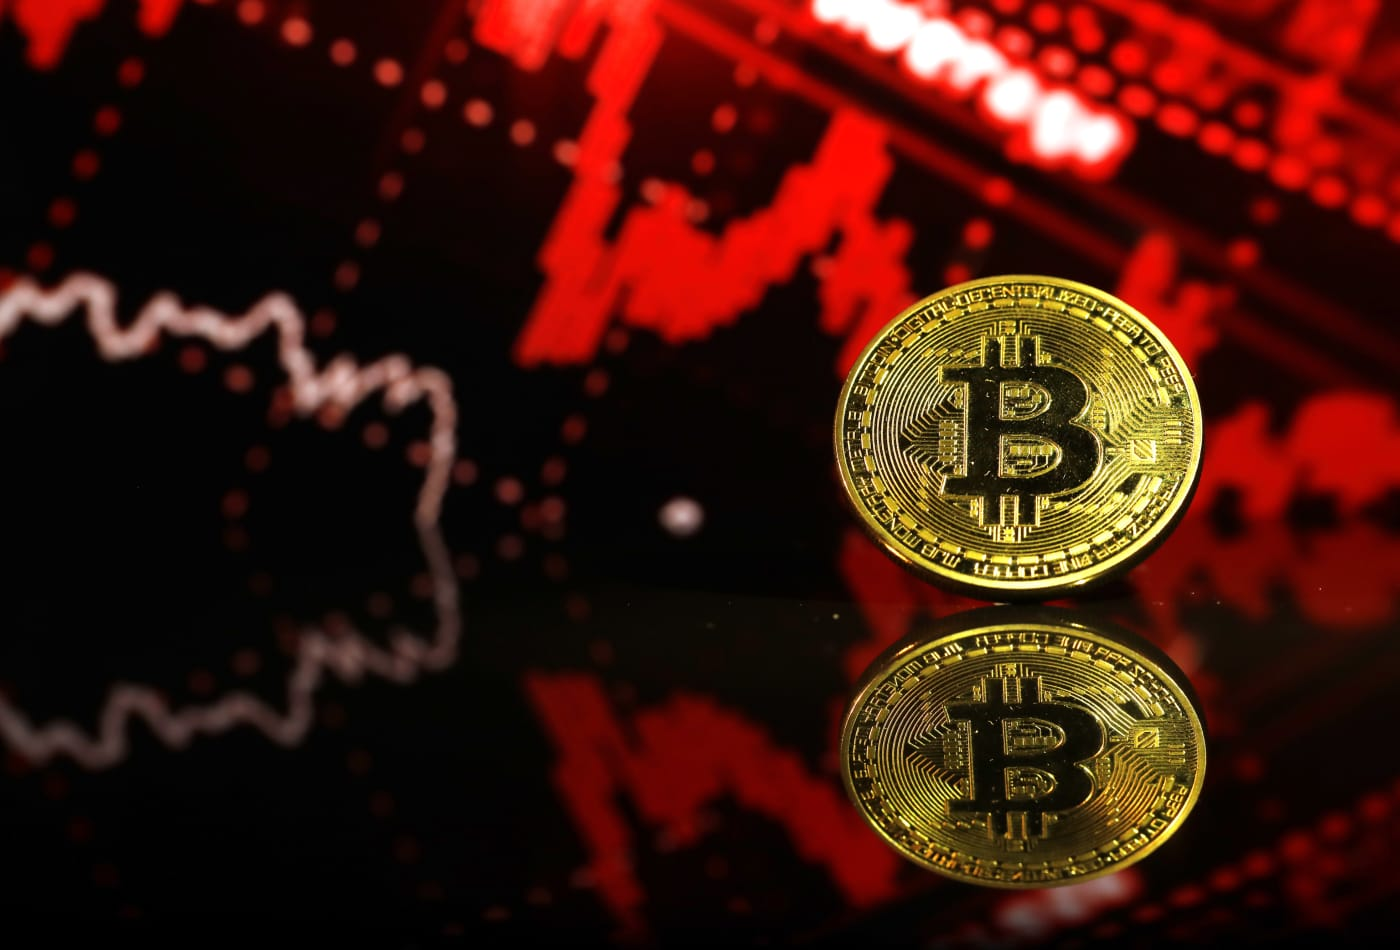 $150 billion wiped off cryptocurrency market in 24 hours as bitcoin pulls back